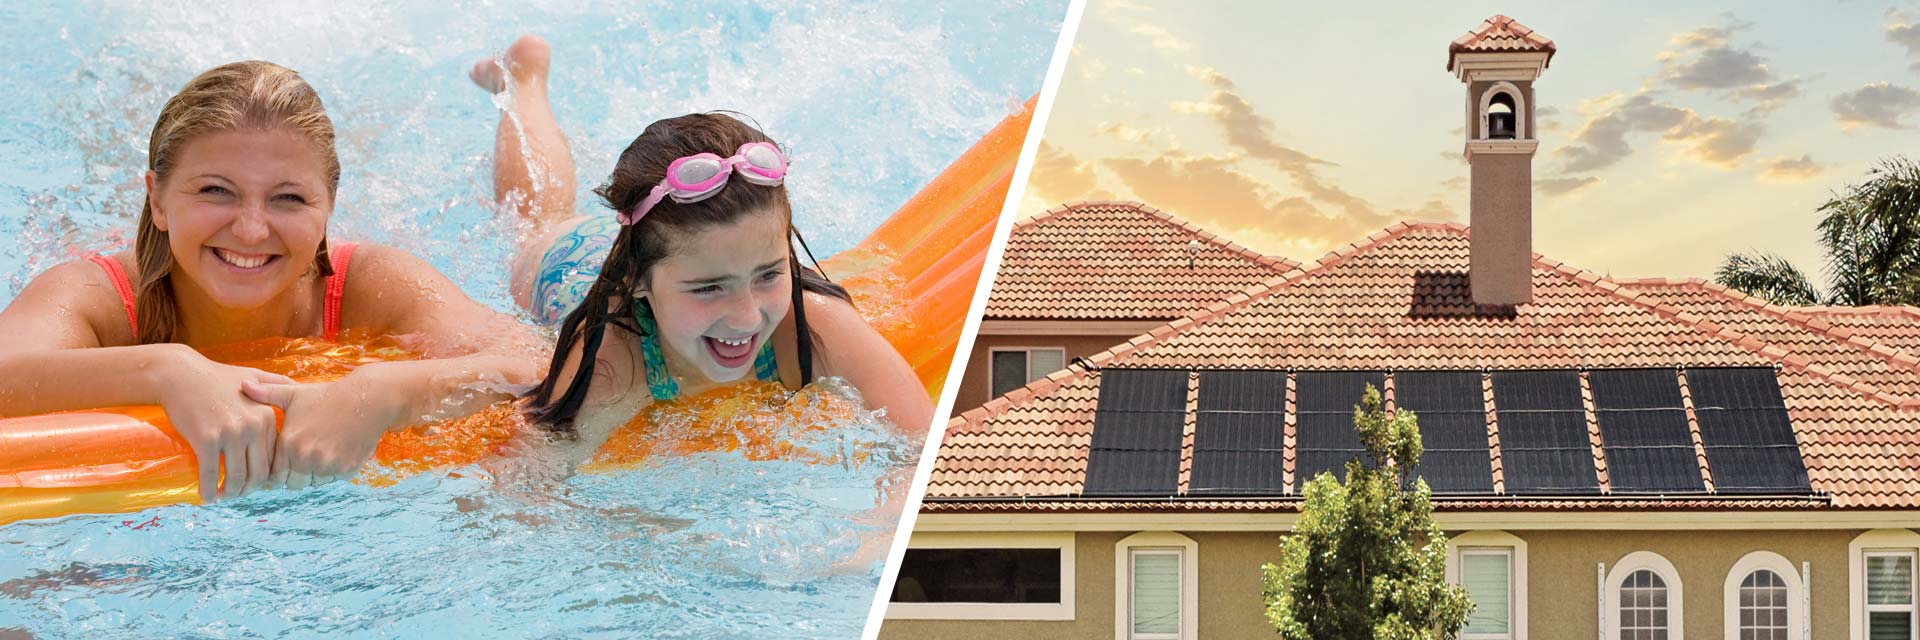 two photos - one of a mother and daughter swimming in a pool, and the other of a beautiful Florida home with a solar pool heating system